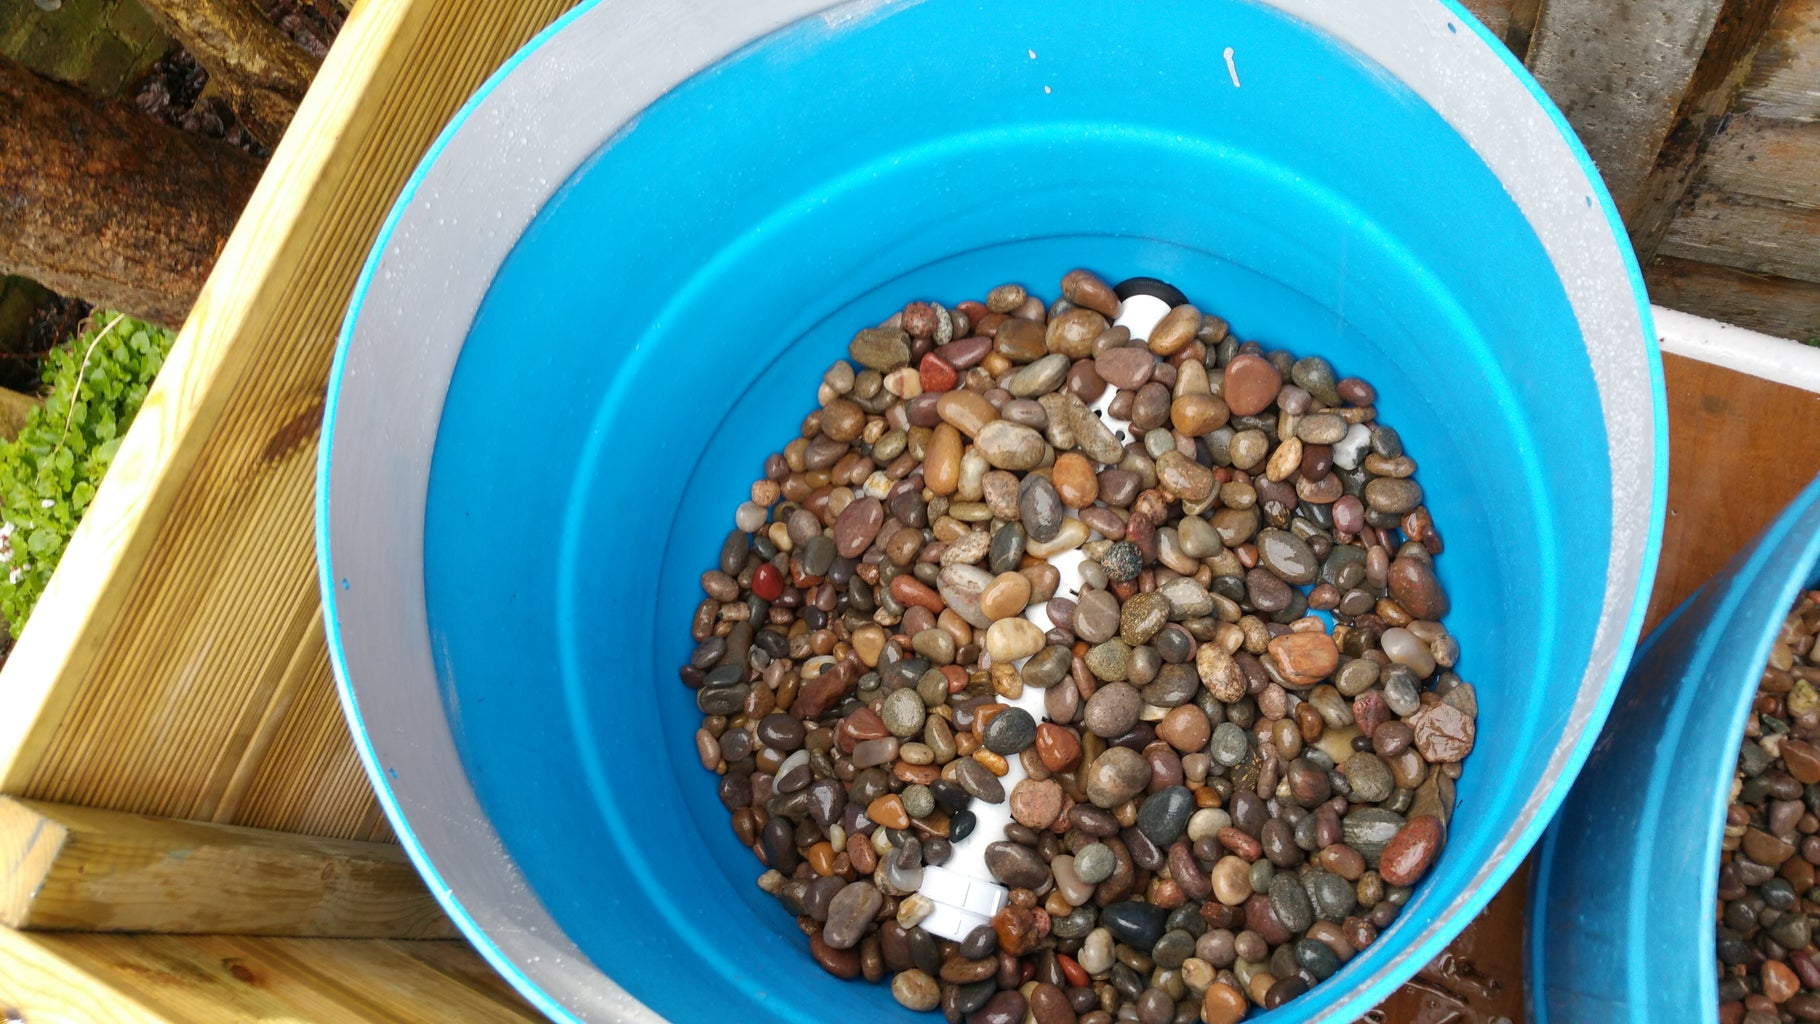 Choosing the Right Stones and Filling Buckets.